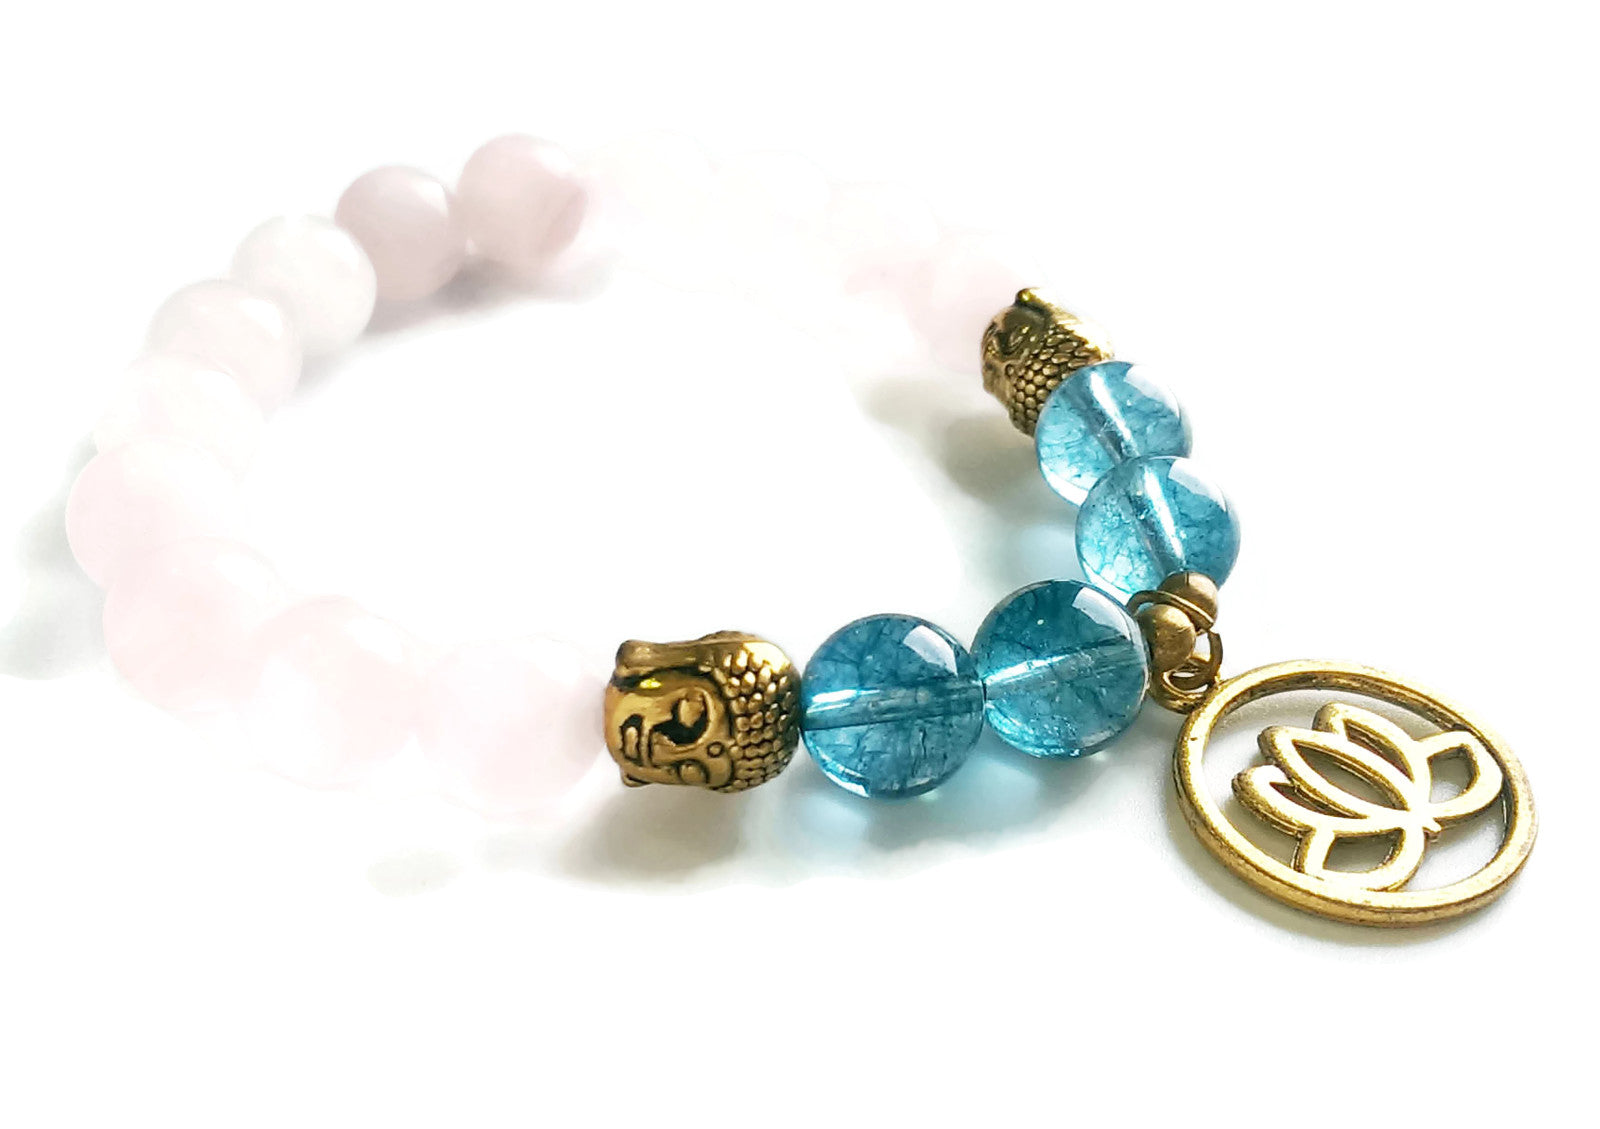 10mm Rose Quartz & Blue Phantom Crystal Stone Wrist Mala Gold Buddha Head Gold Lotus Charm Stretch Bracelet Meditation | Heart Chakra